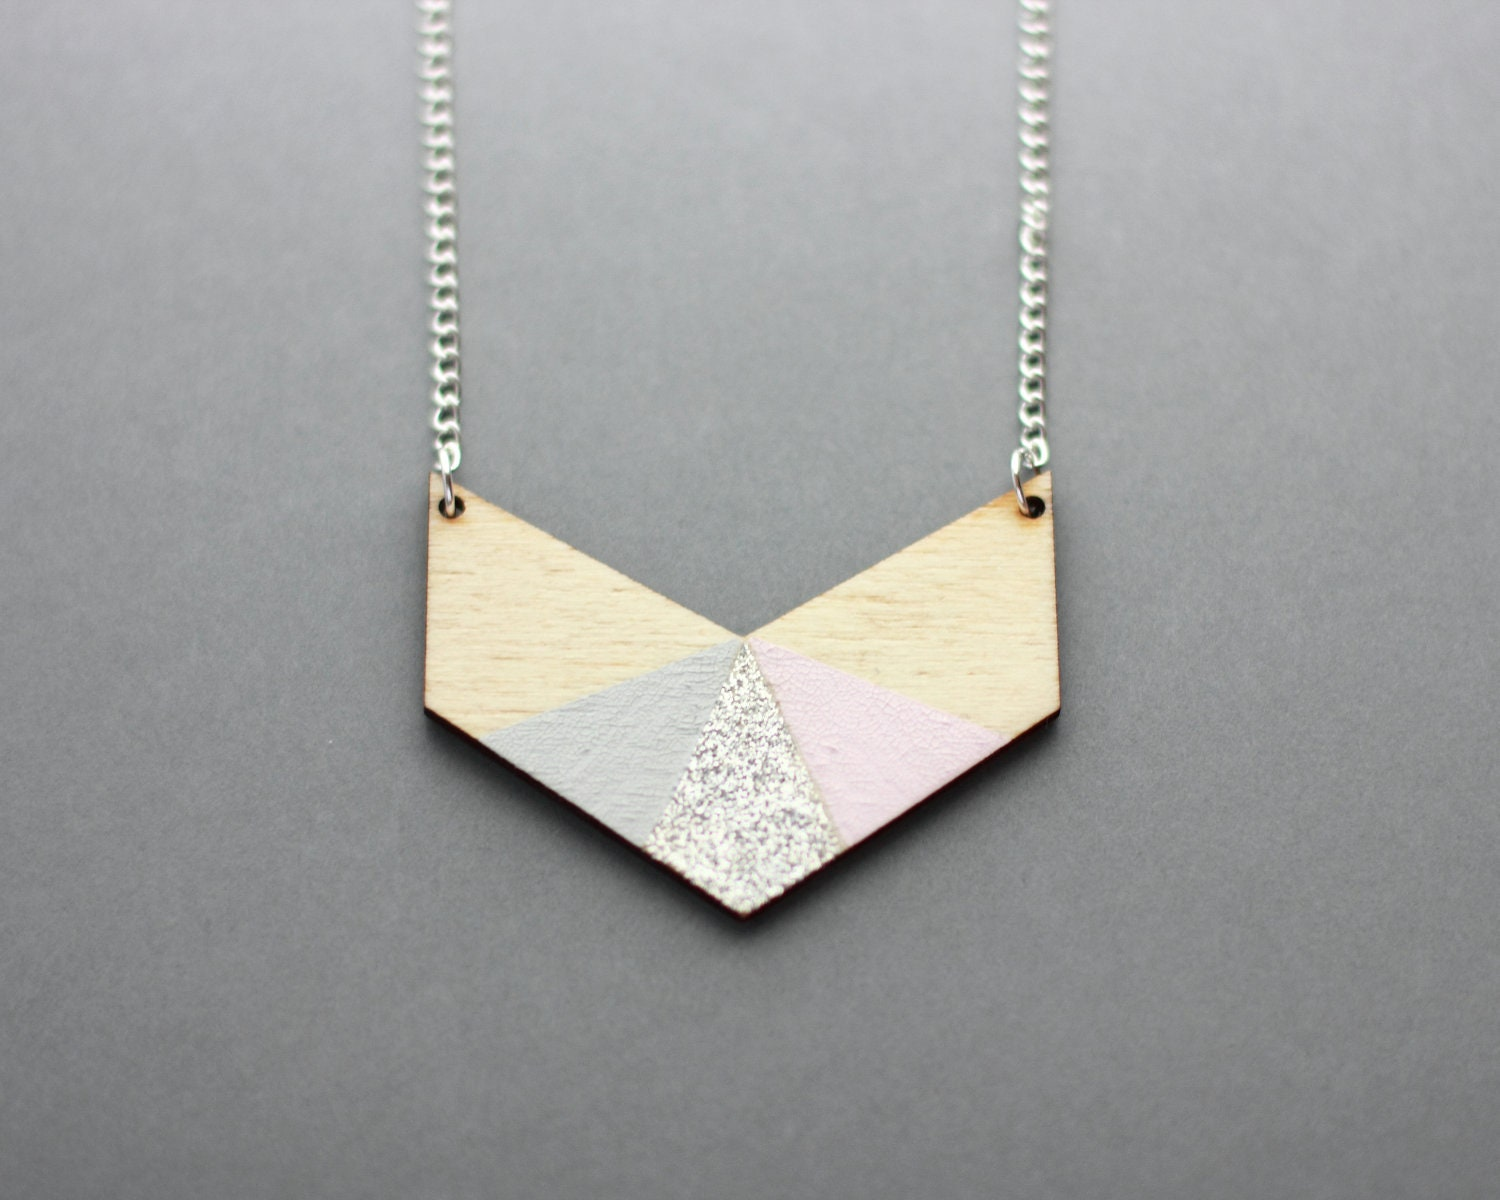 Three Colour Glitter Wooden Chevron Necklace (Pink - Grey - Silver) - Modern Handmade Jewellery - FawnAndRose